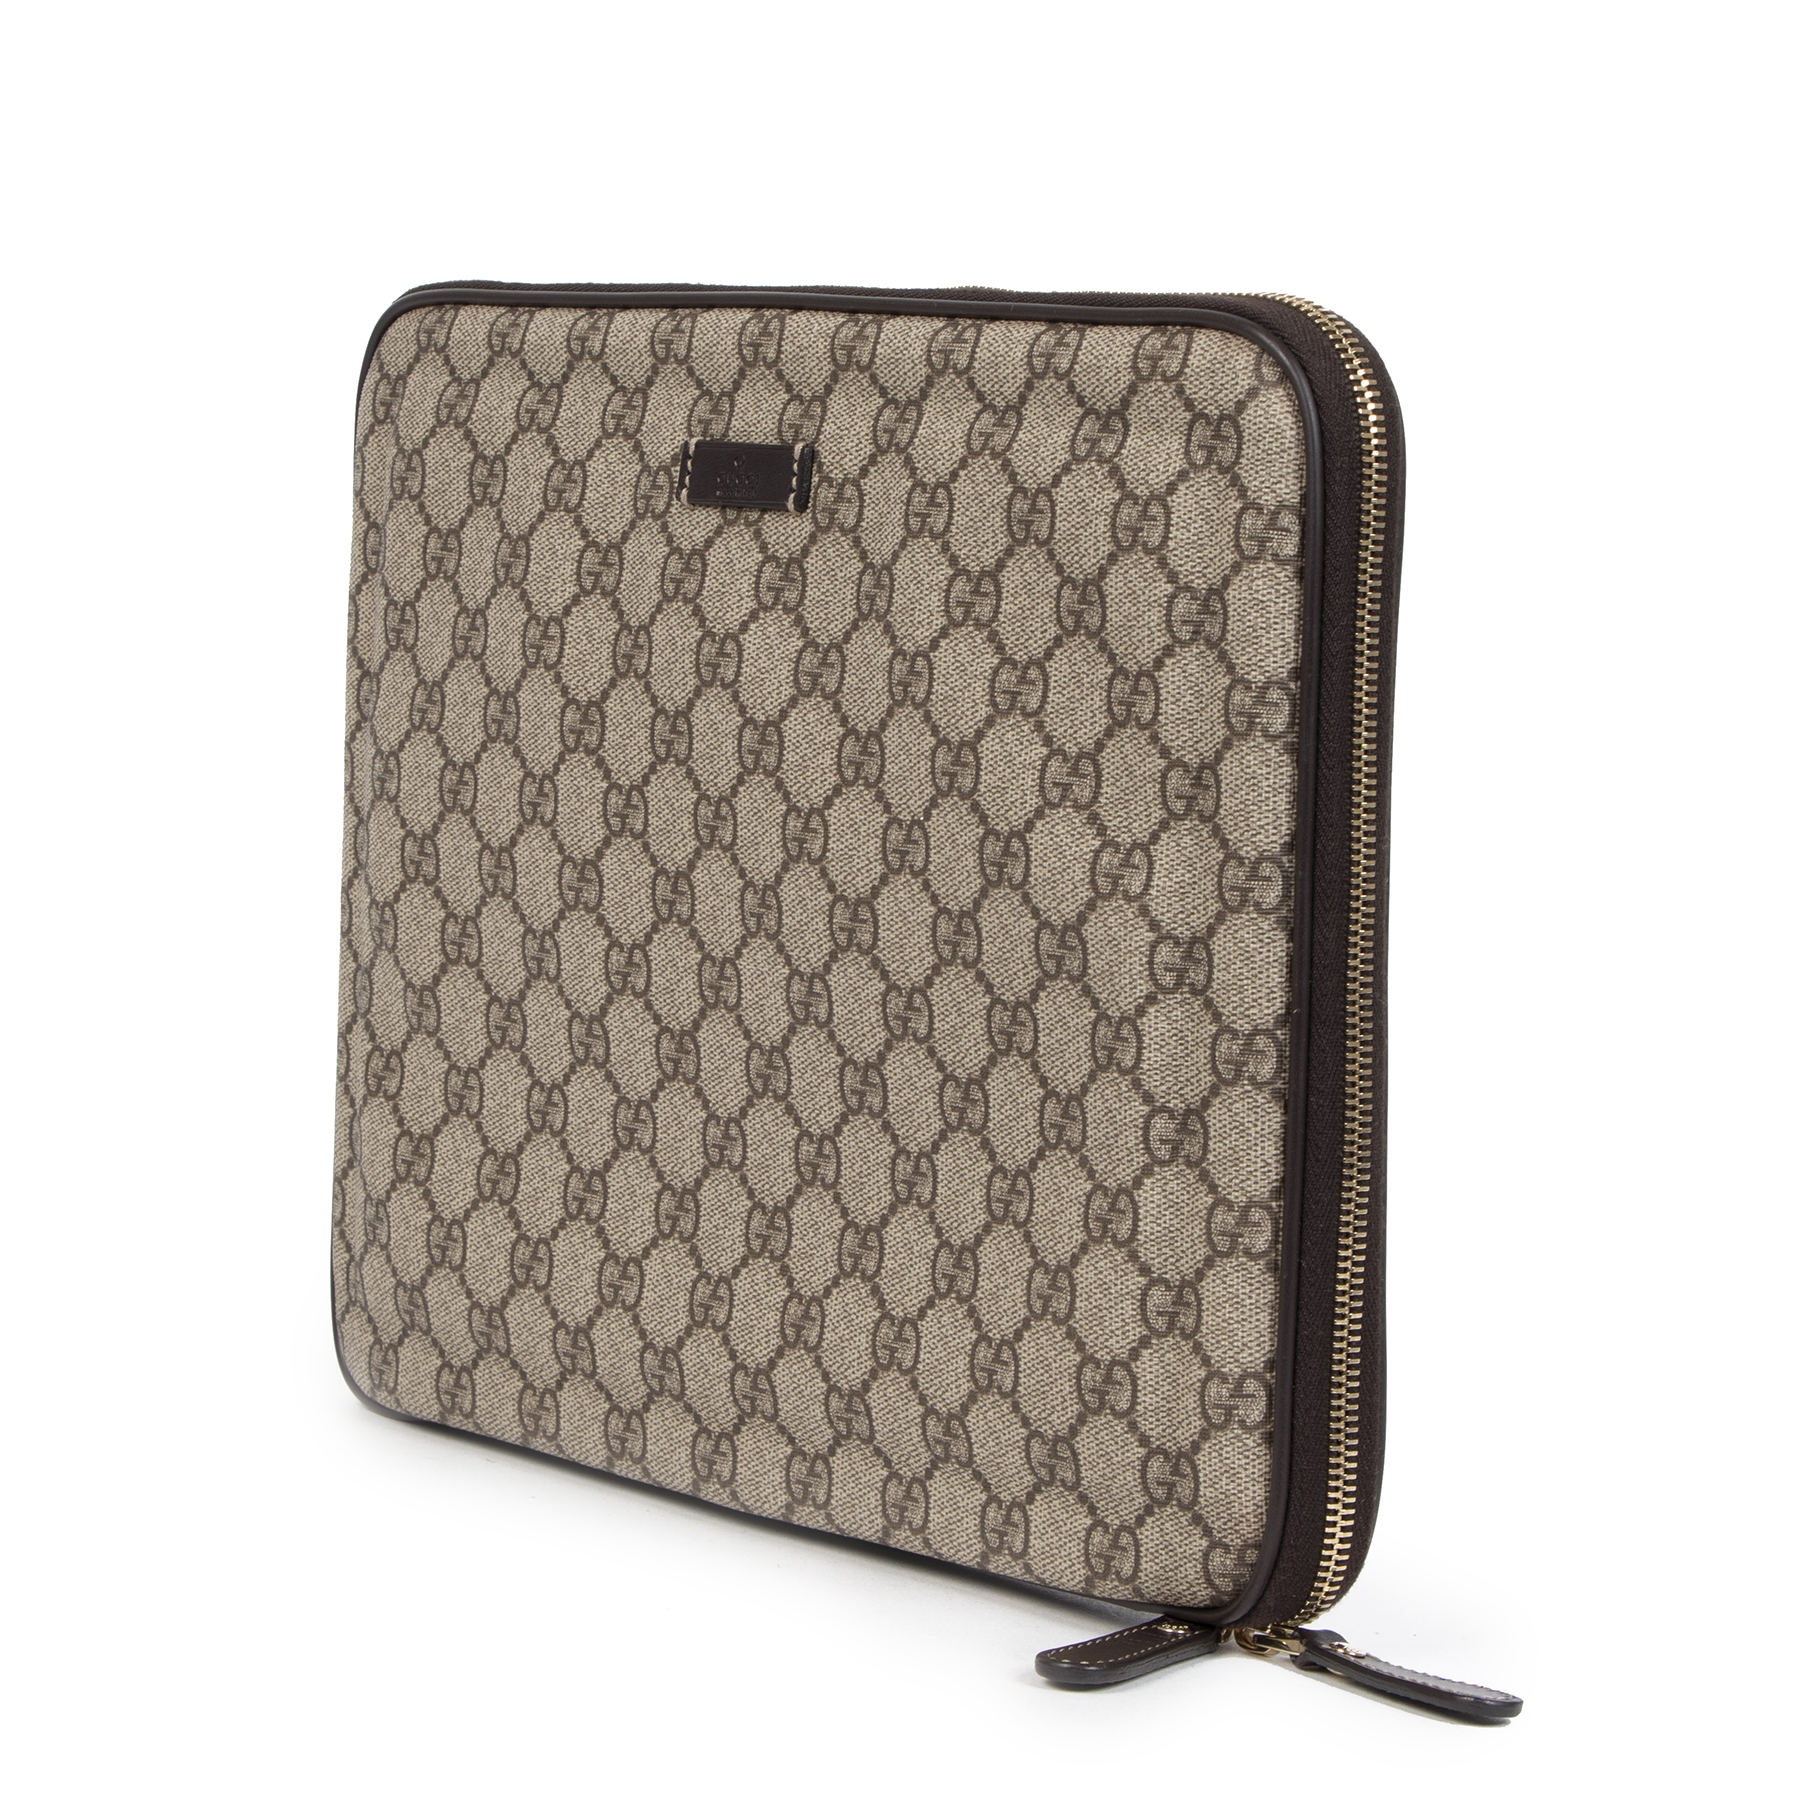 Authentique seconde main vintage Gucci GG Monogram Laptop Sleeve achète en ligne webshop LabelLOV